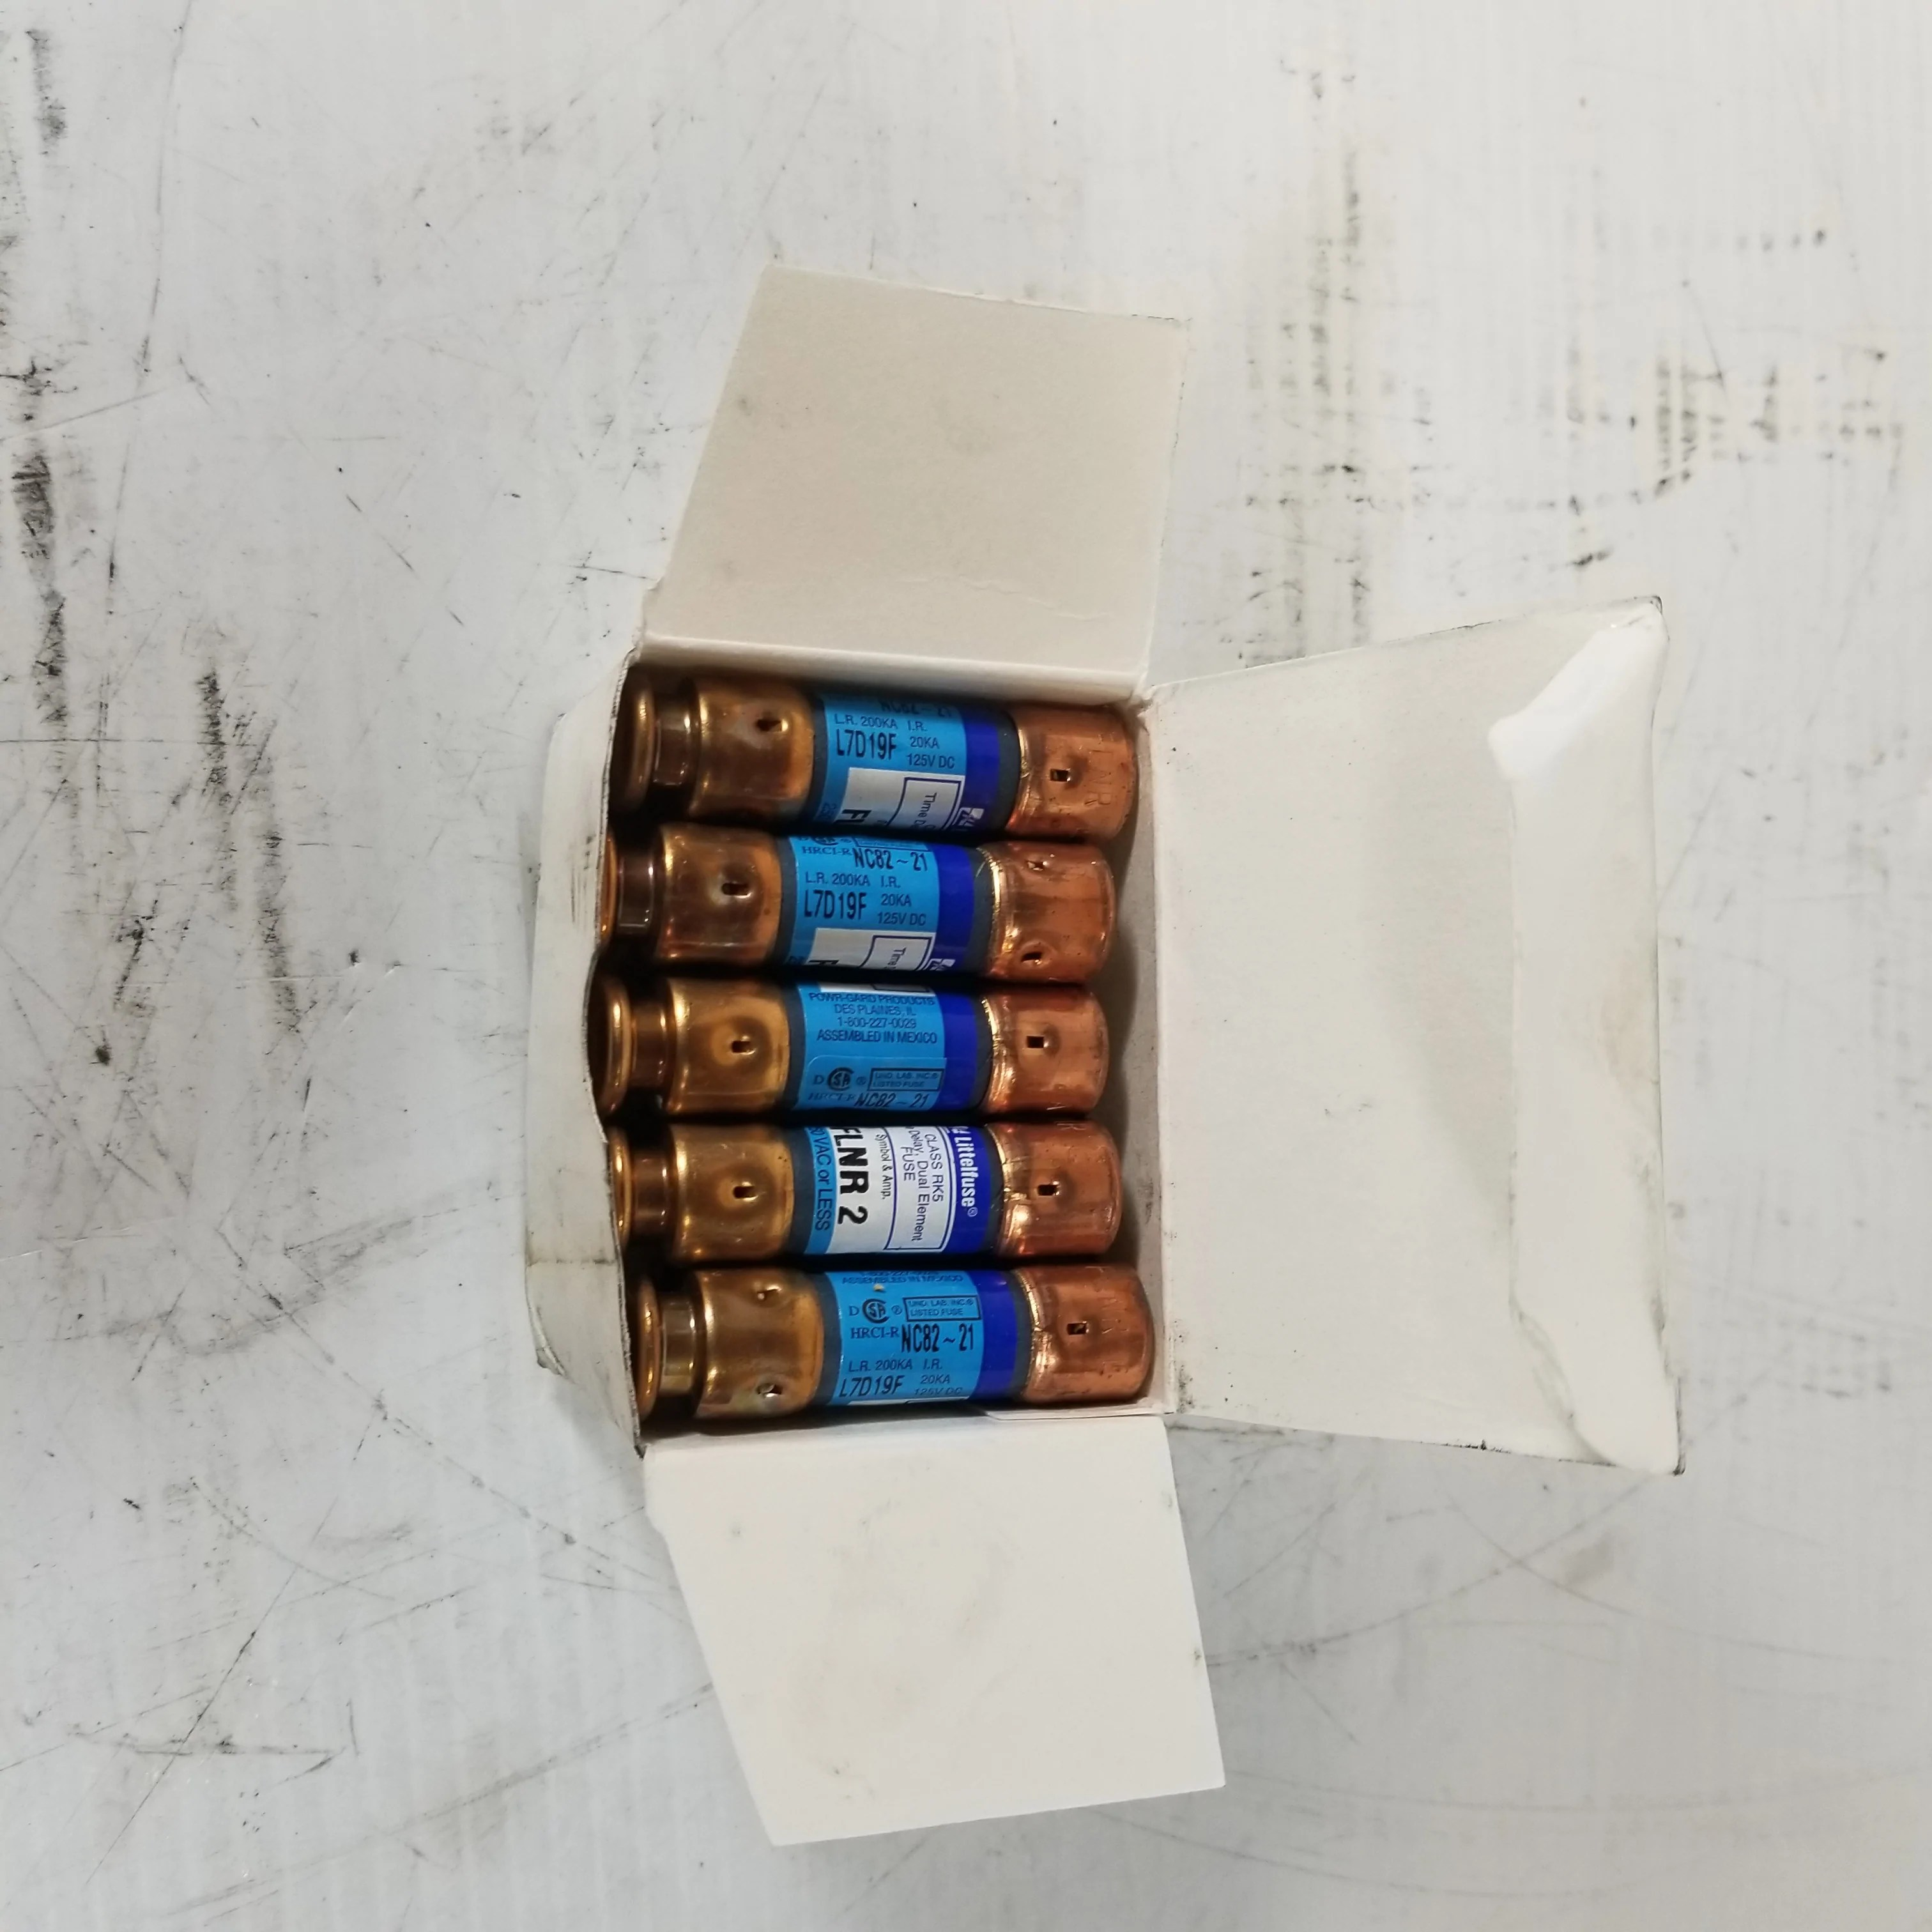 hight resolution of littelfuse flnr 2 class rk5 time delay cartridge fuse 2a box of 10